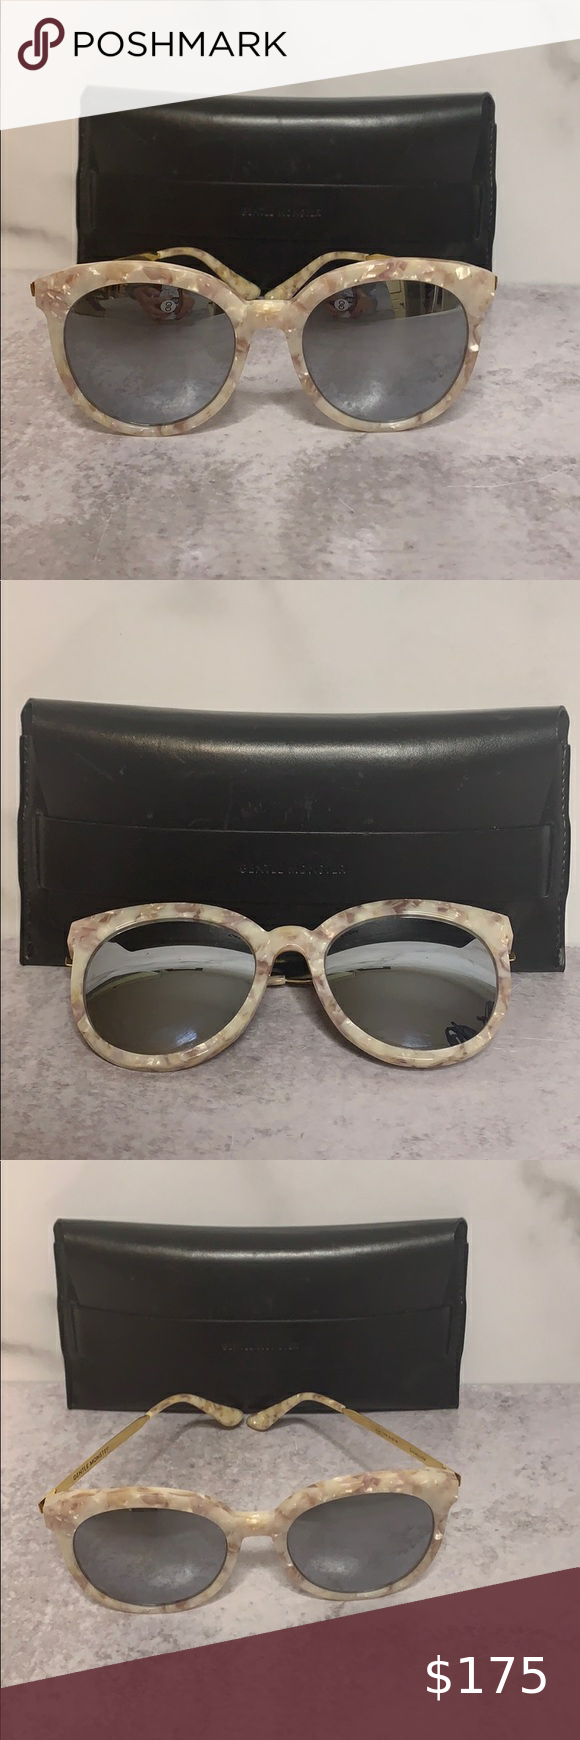 """Gentle Monster Loveless Oversize Sunglasses Y 0227 Gentle Monster Loveless Pink Tan Marble Gold Arm Mirrored Sunglasses Pre owned (only worn a few times). Good condition. No flaws. 1 7/8H x 1 7/8""""H lens Gentle Monster Accessories Sunglasses"""